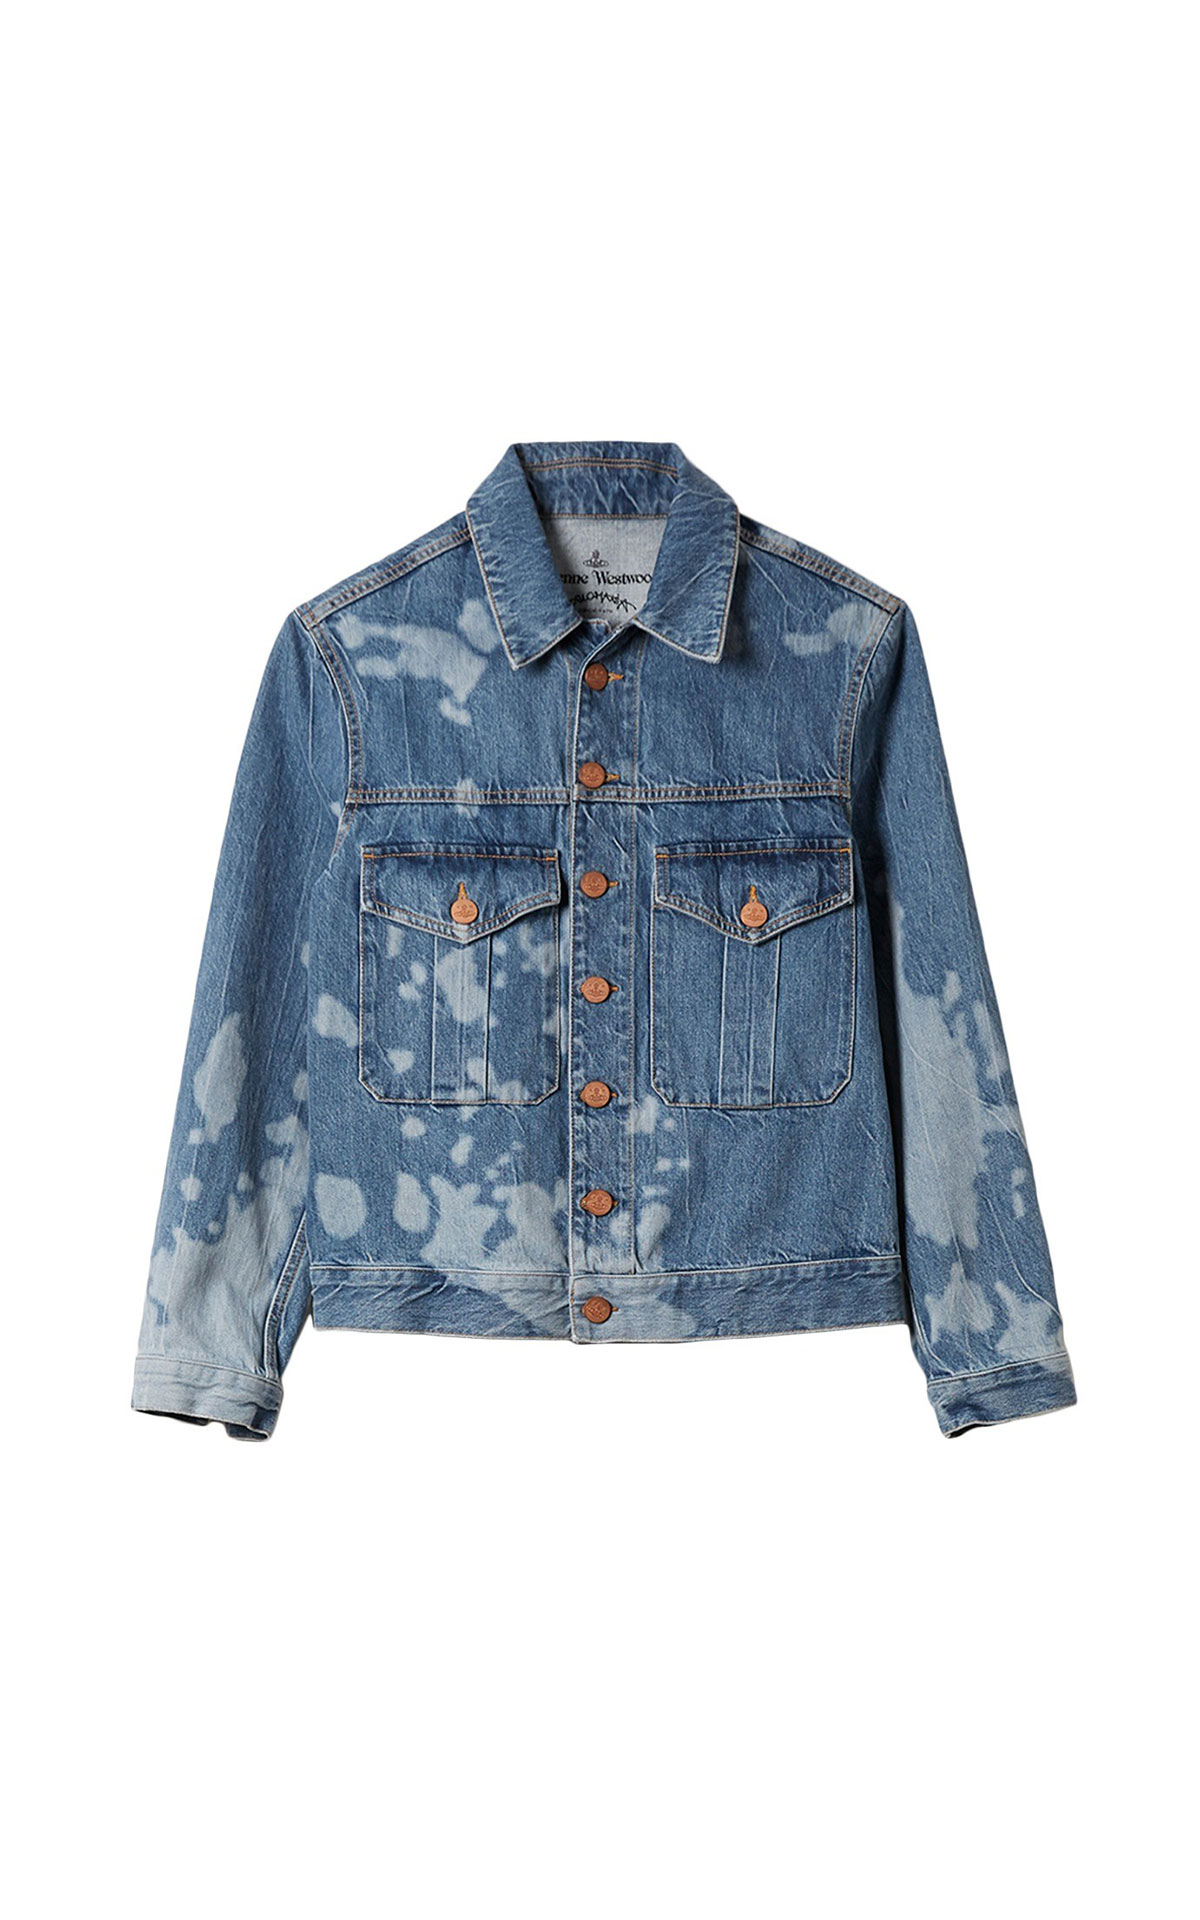 Vivienne Westwood Type 3 jacket from Bicester Village